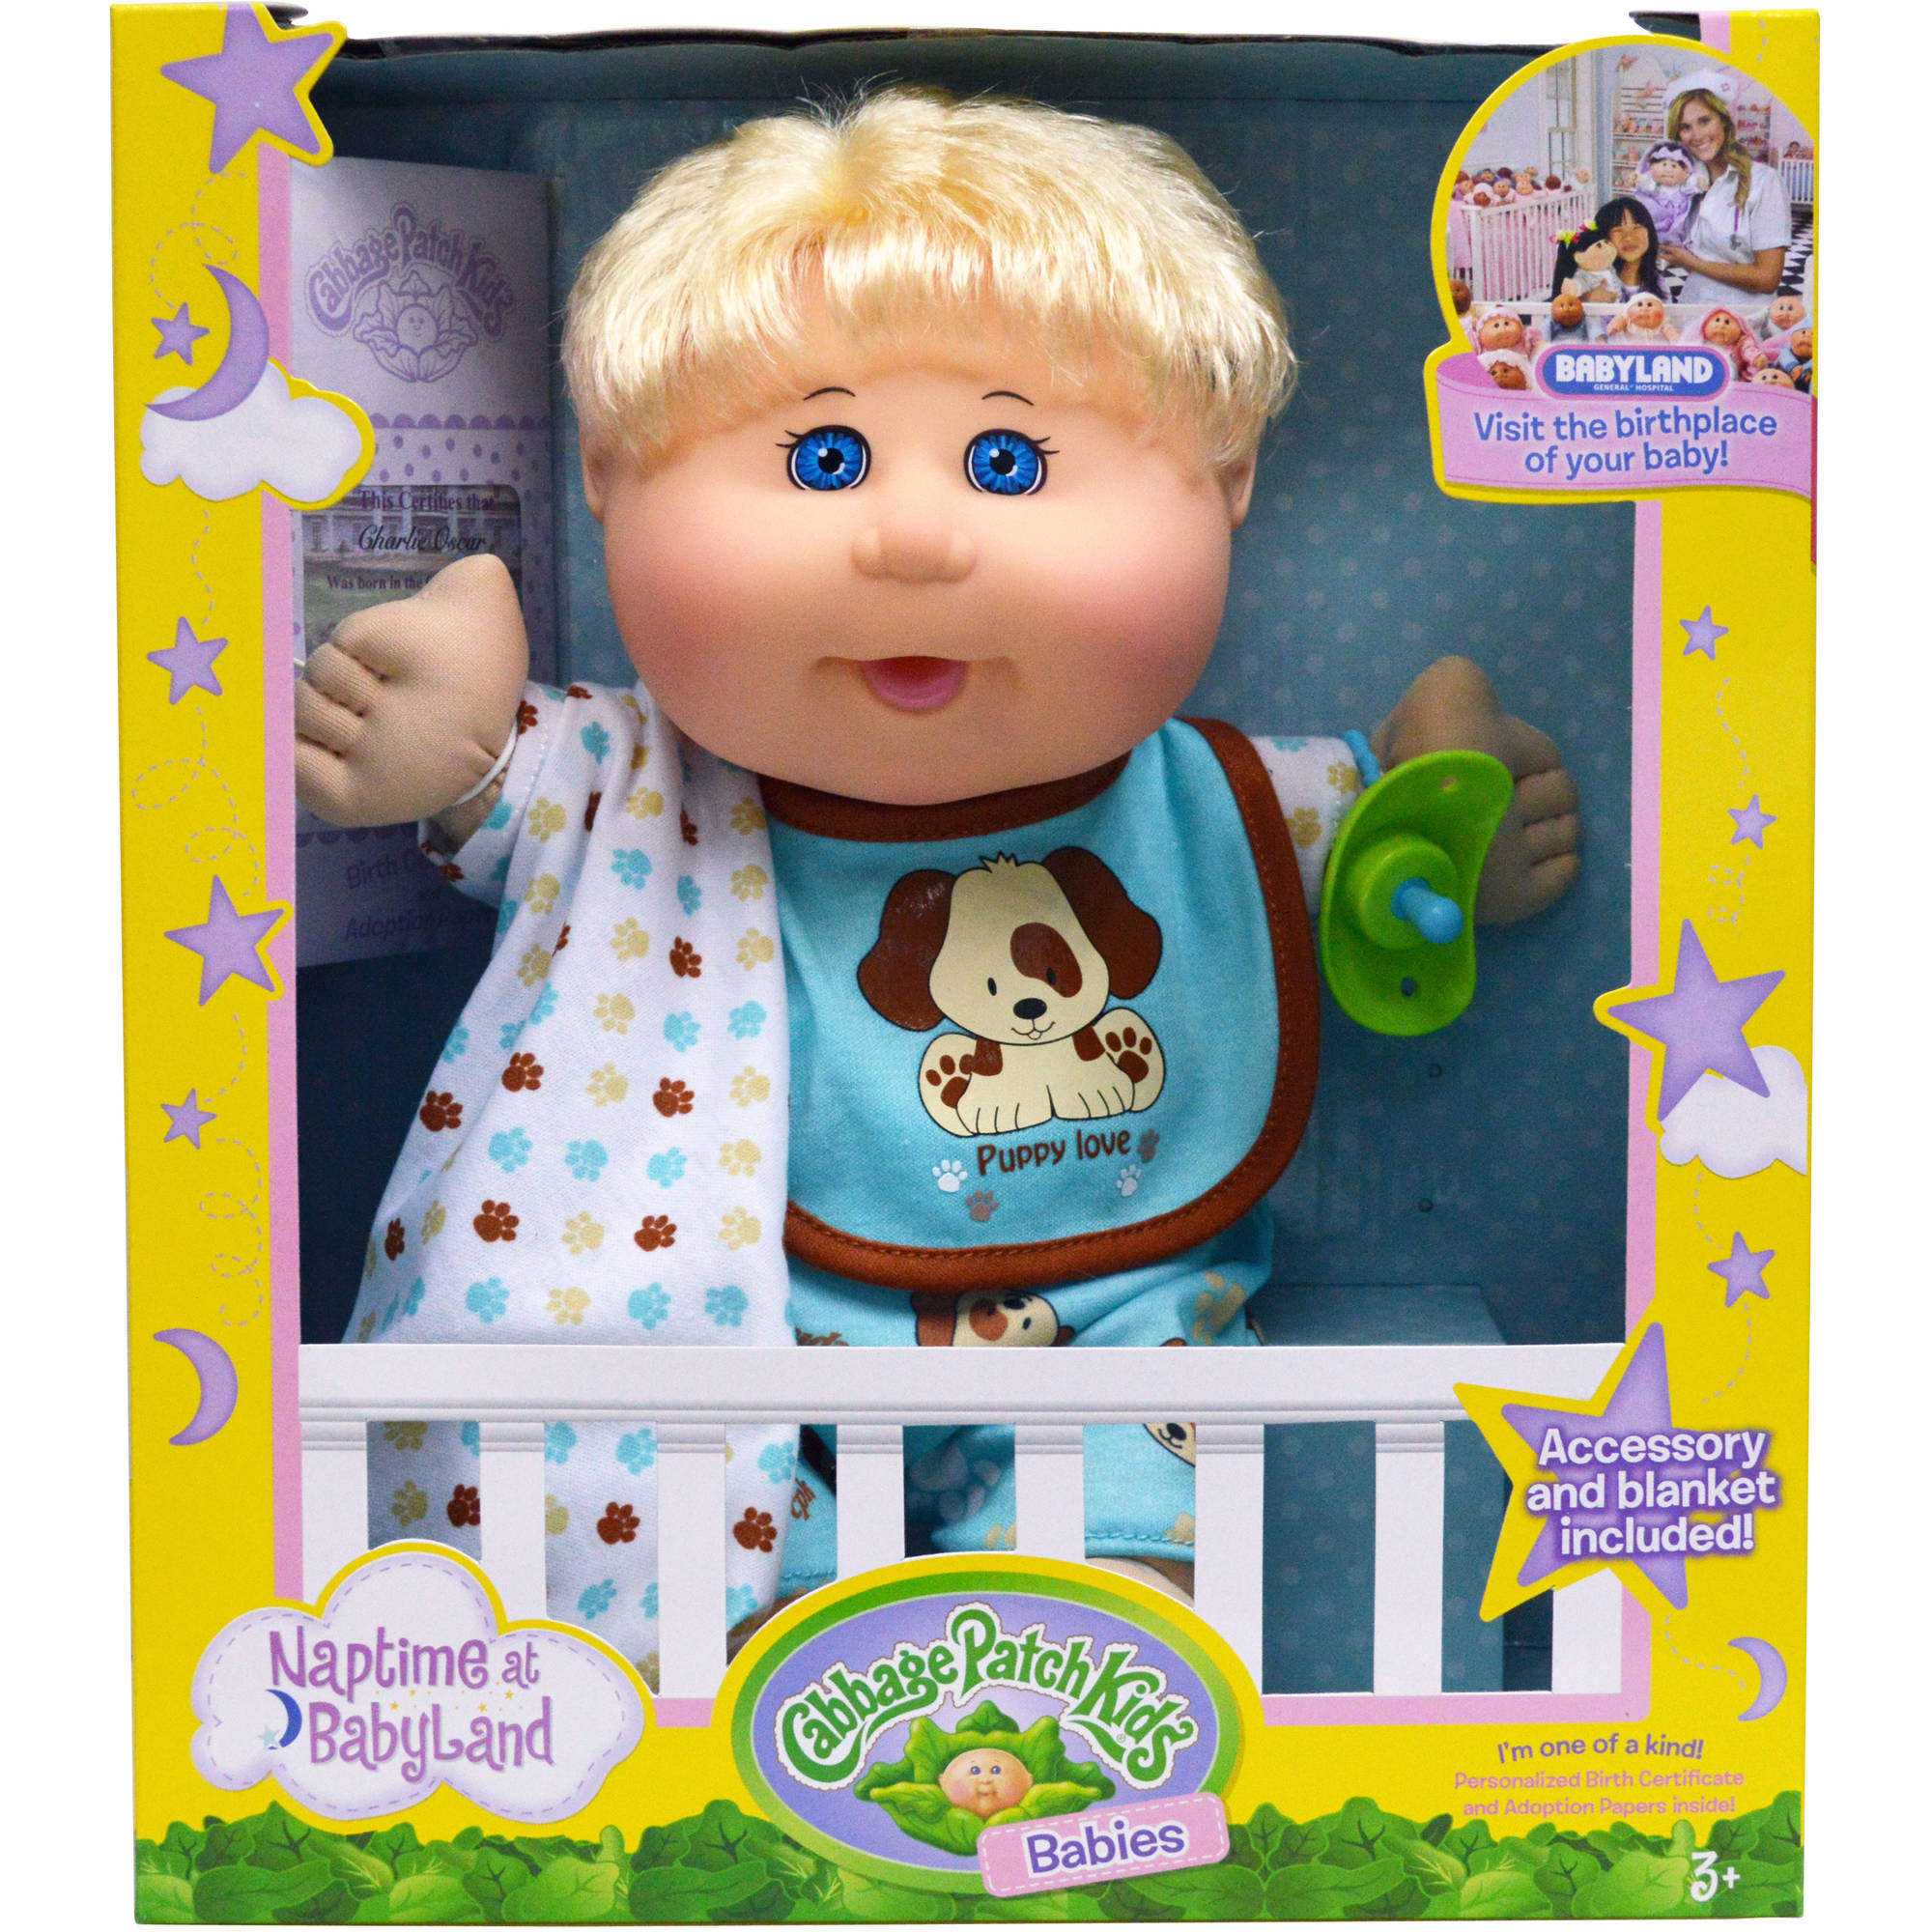 Cabbage Patch Kids Naptime Babies Doll, Blonde Hair Blue Eye Boy by Wicked Cool Toys